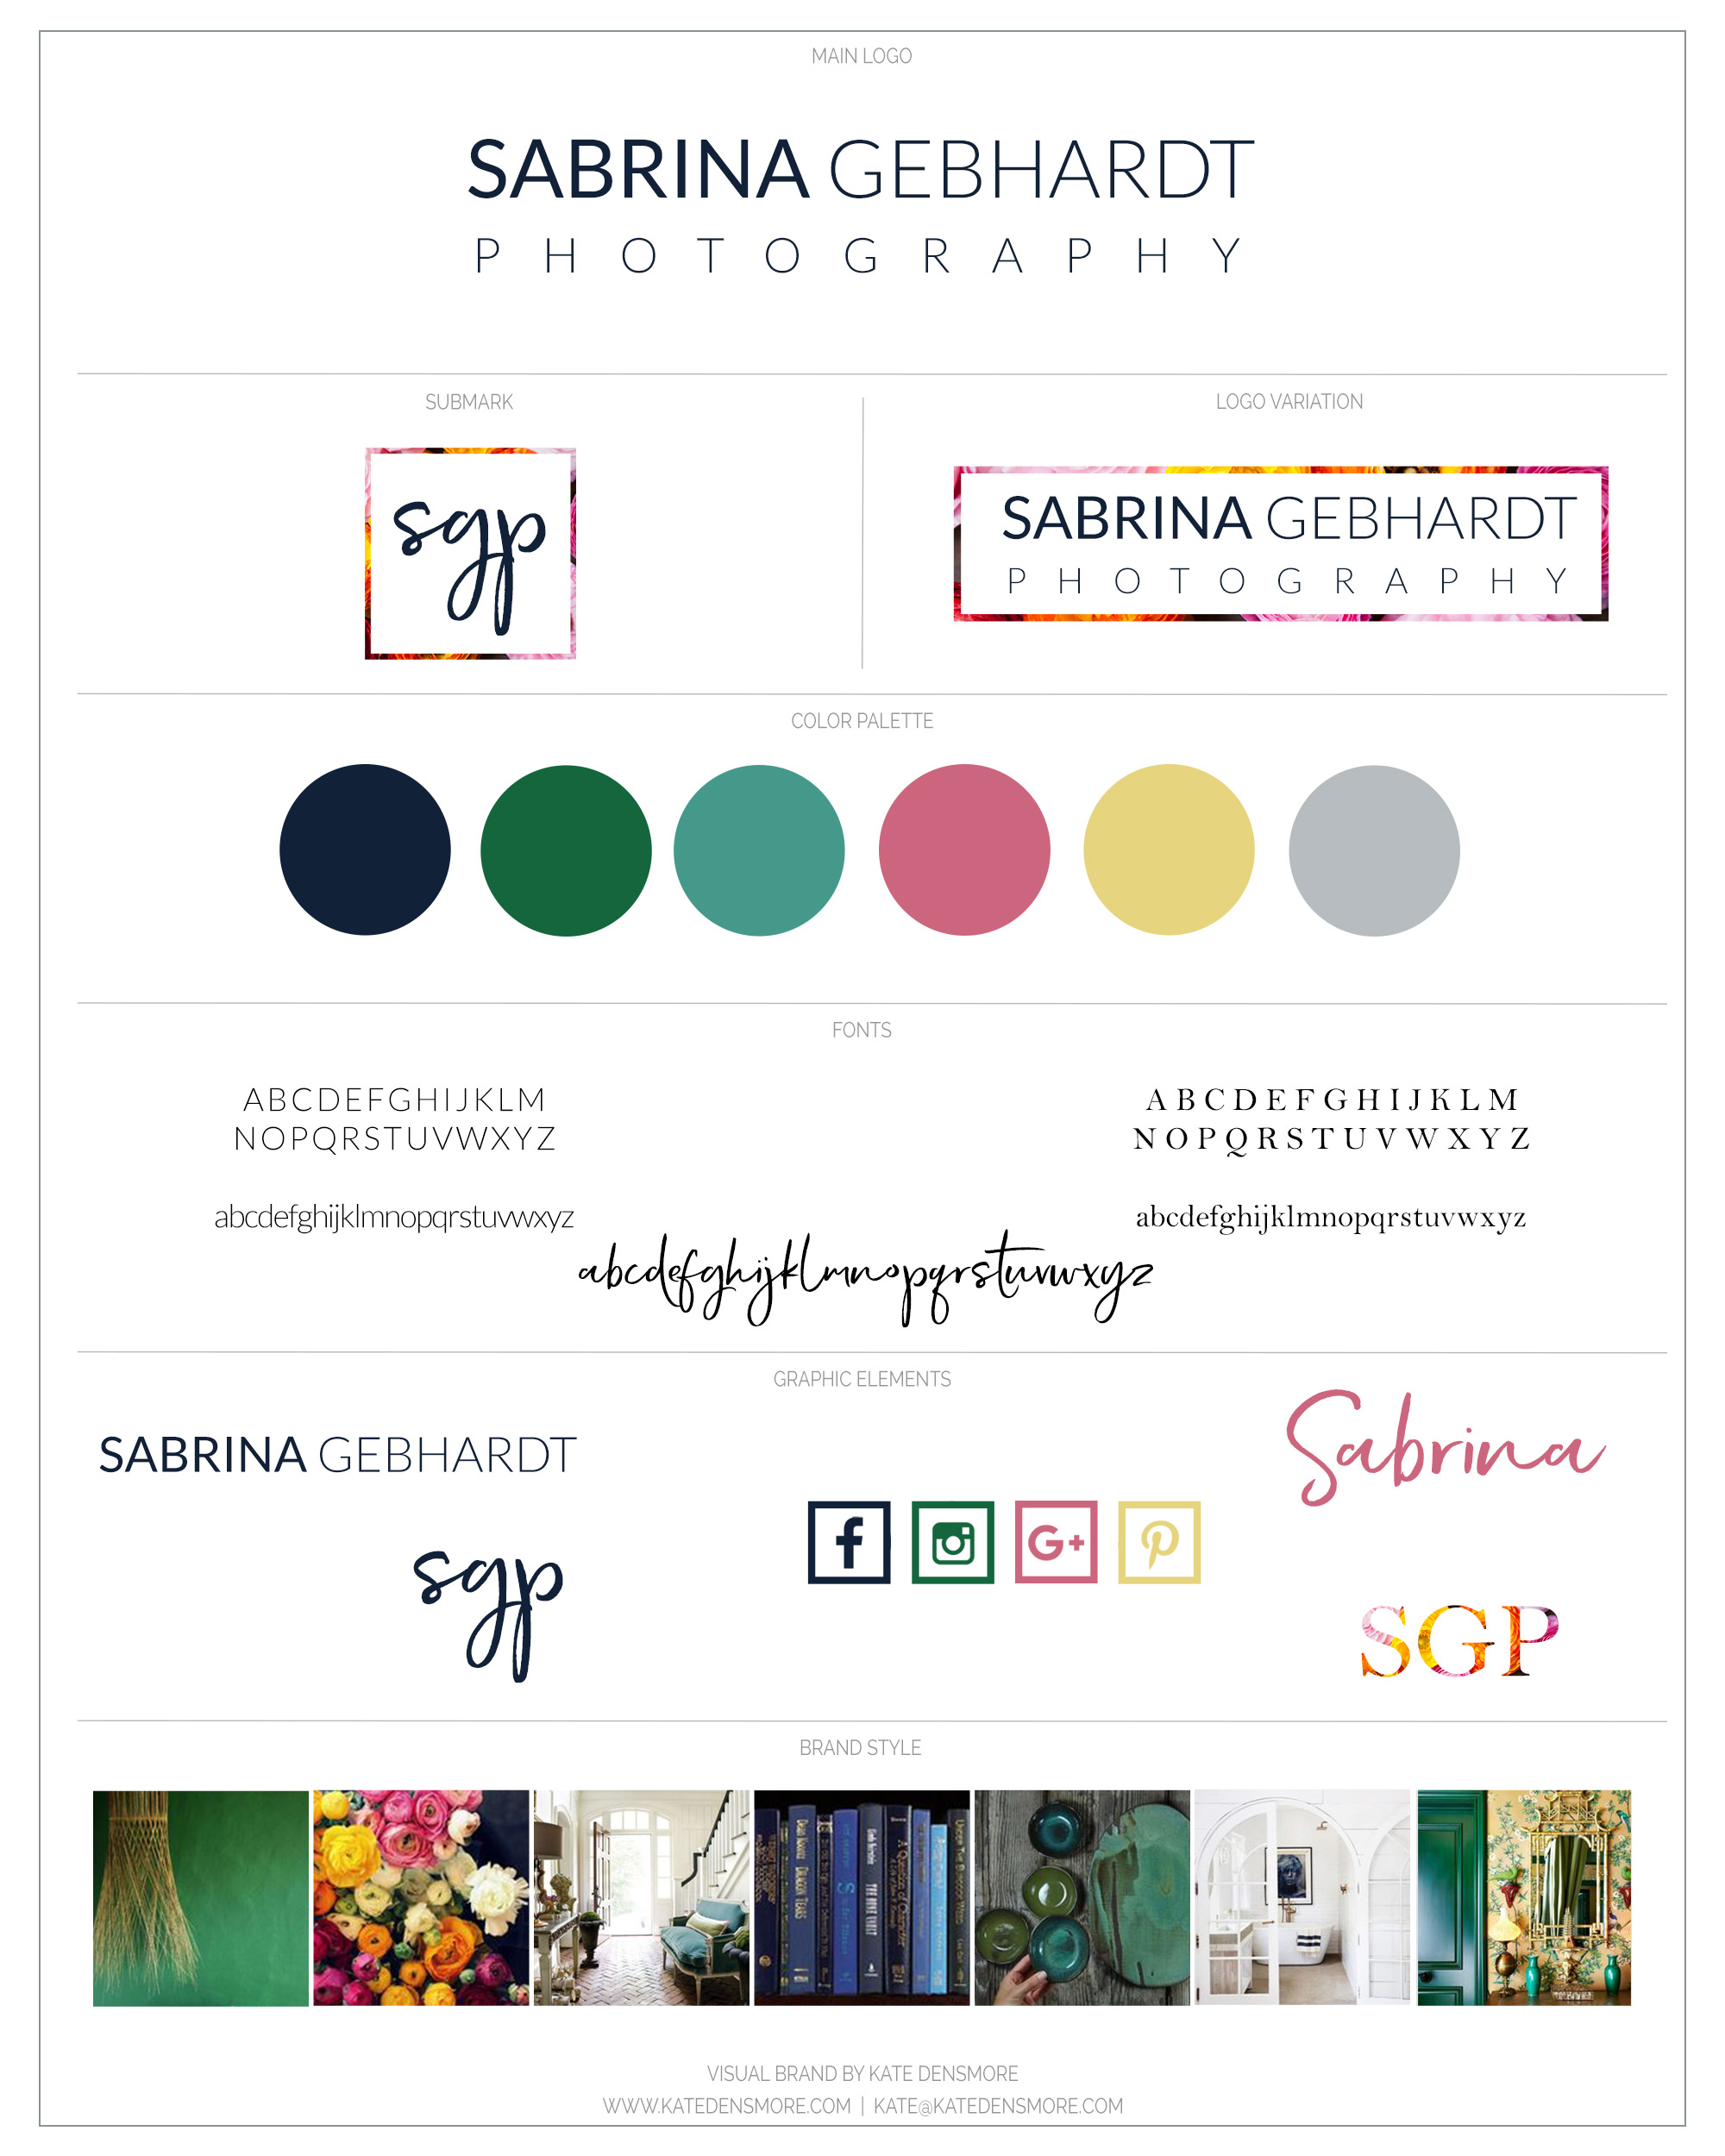 branding board for a bold, authentic, fun photographer